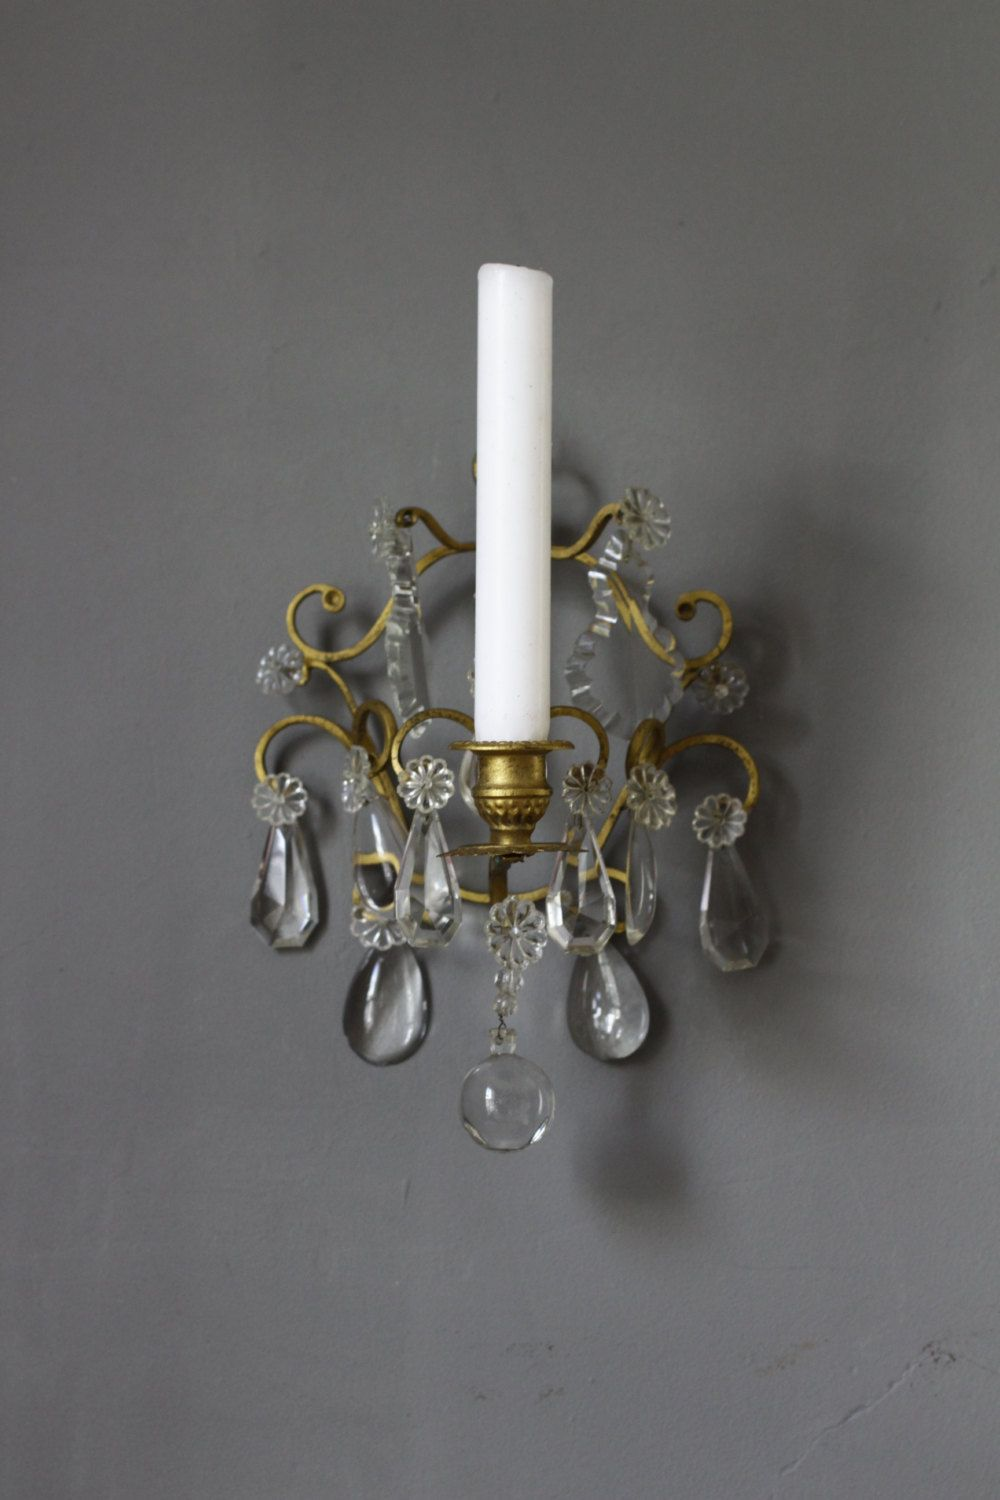 Set Of 2 Brass Wall Sconces With 24 Crystal Prisms Double Candlestick Harp And Swan Design Sconce For Home Office Or Music Room Sconces Brass Wall Sconce Bronze Wall Sconce